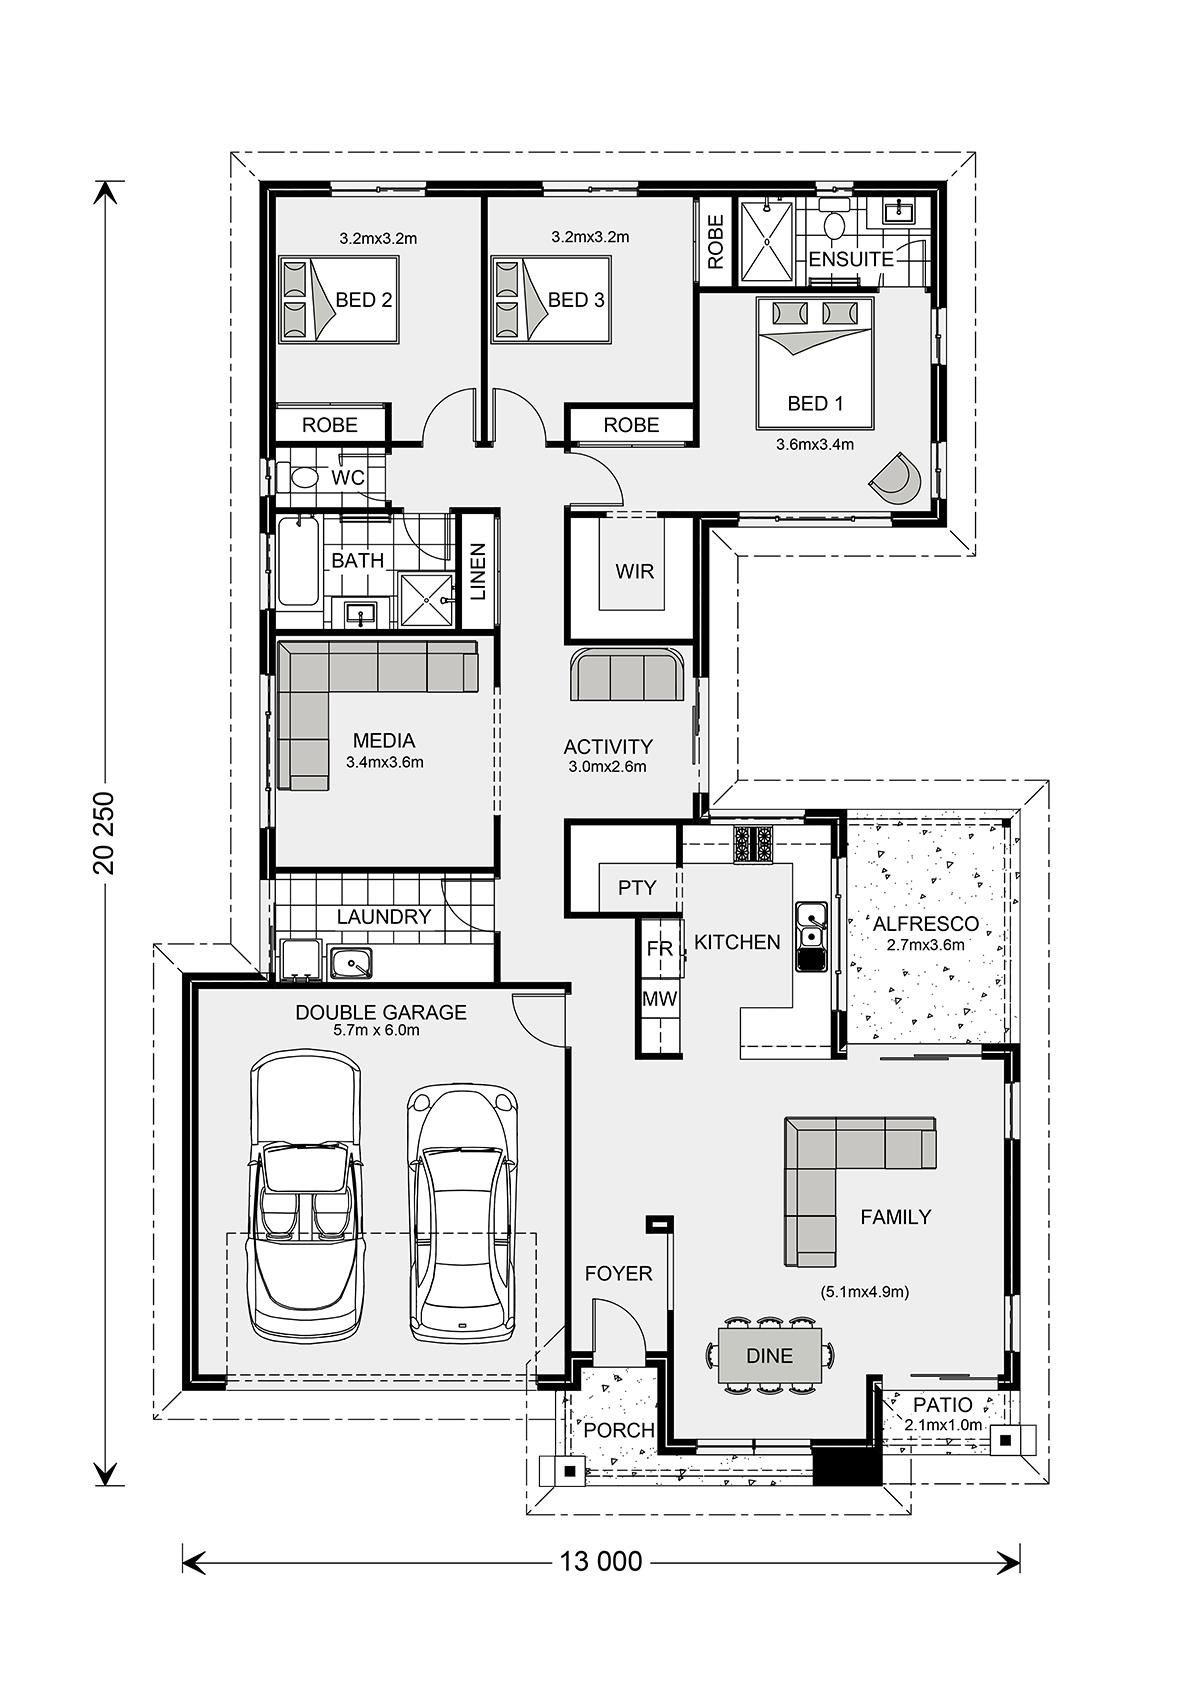 Lake View House Plans Unique Lakeview 297 Home Designs In G J Gardner Homes